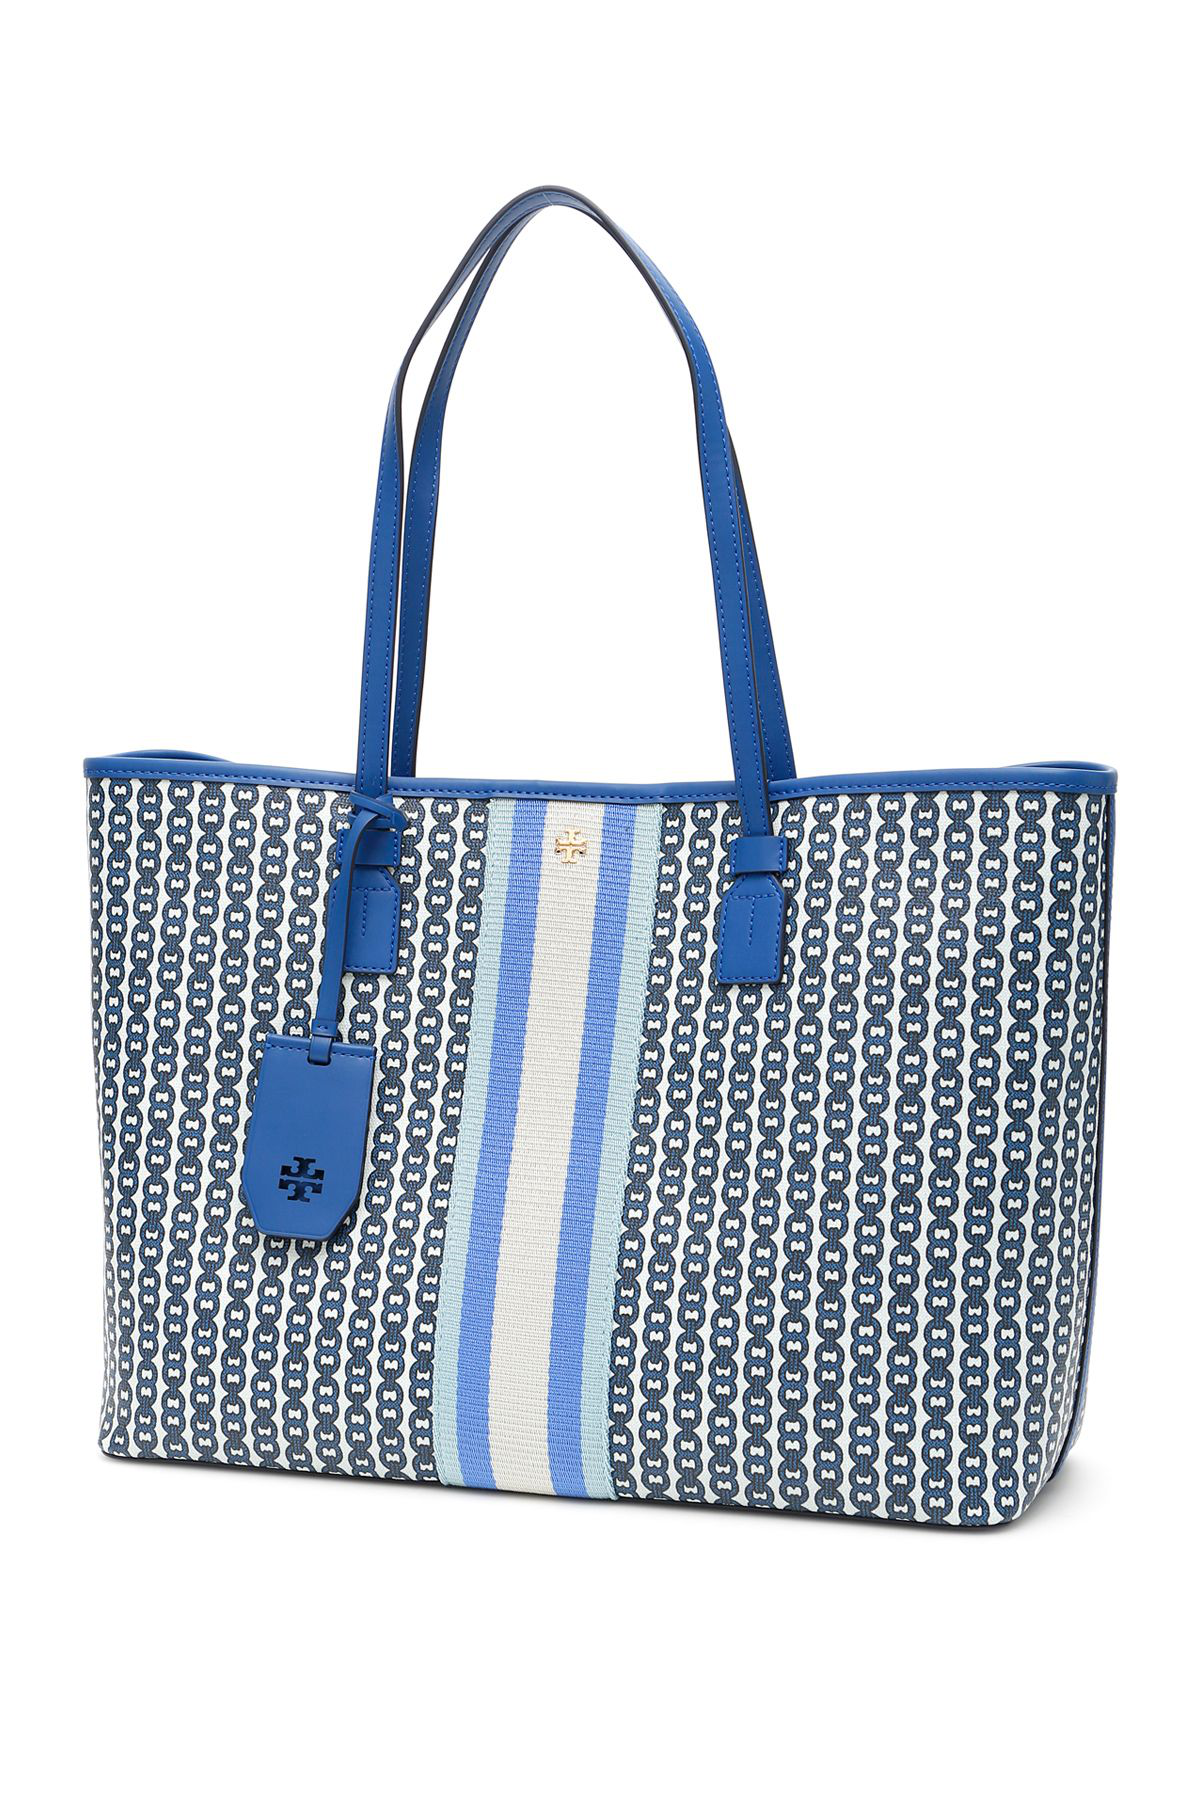 faf17410be47 Tory Burch Medium Gemini Link Shopper In Bondi Blue Gemini Link ...